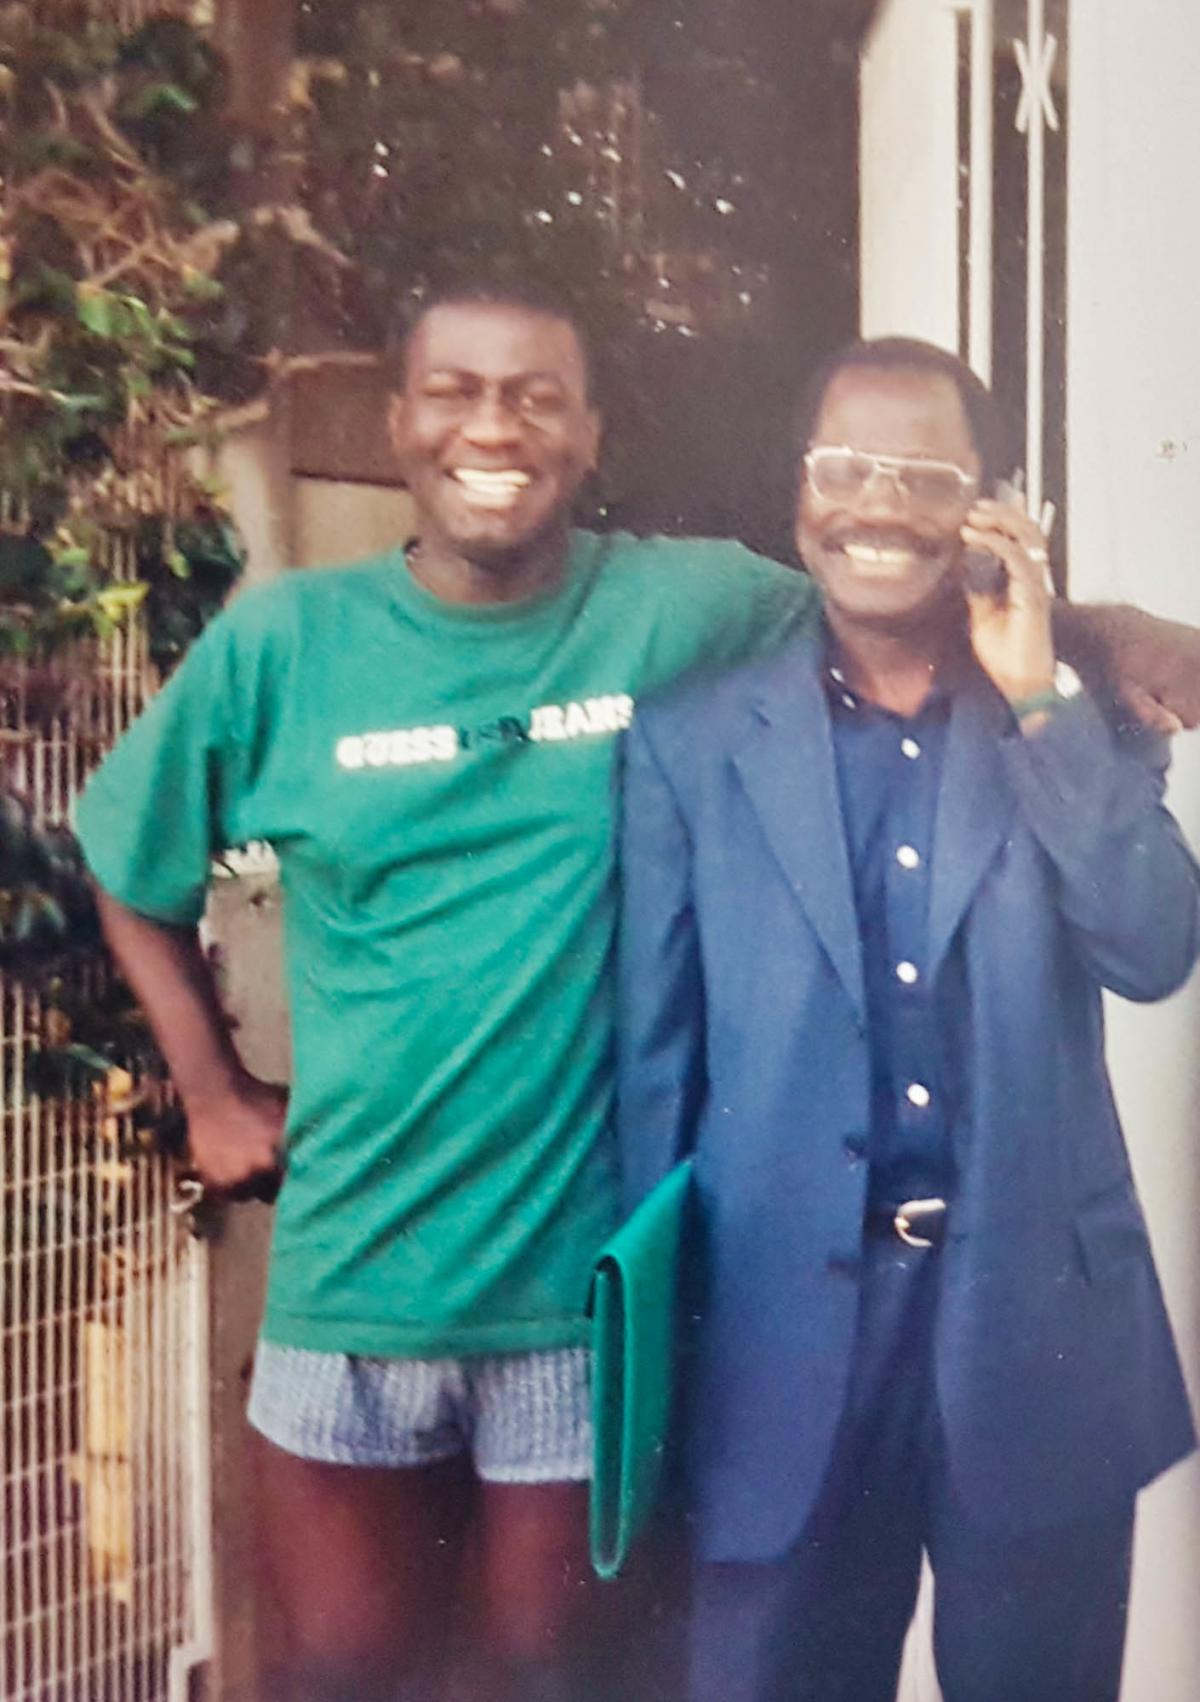 Carl Manlan at 22 with his dad the doctor, Kassi Manlan, in a photo from 2000. Kassi died the next year.